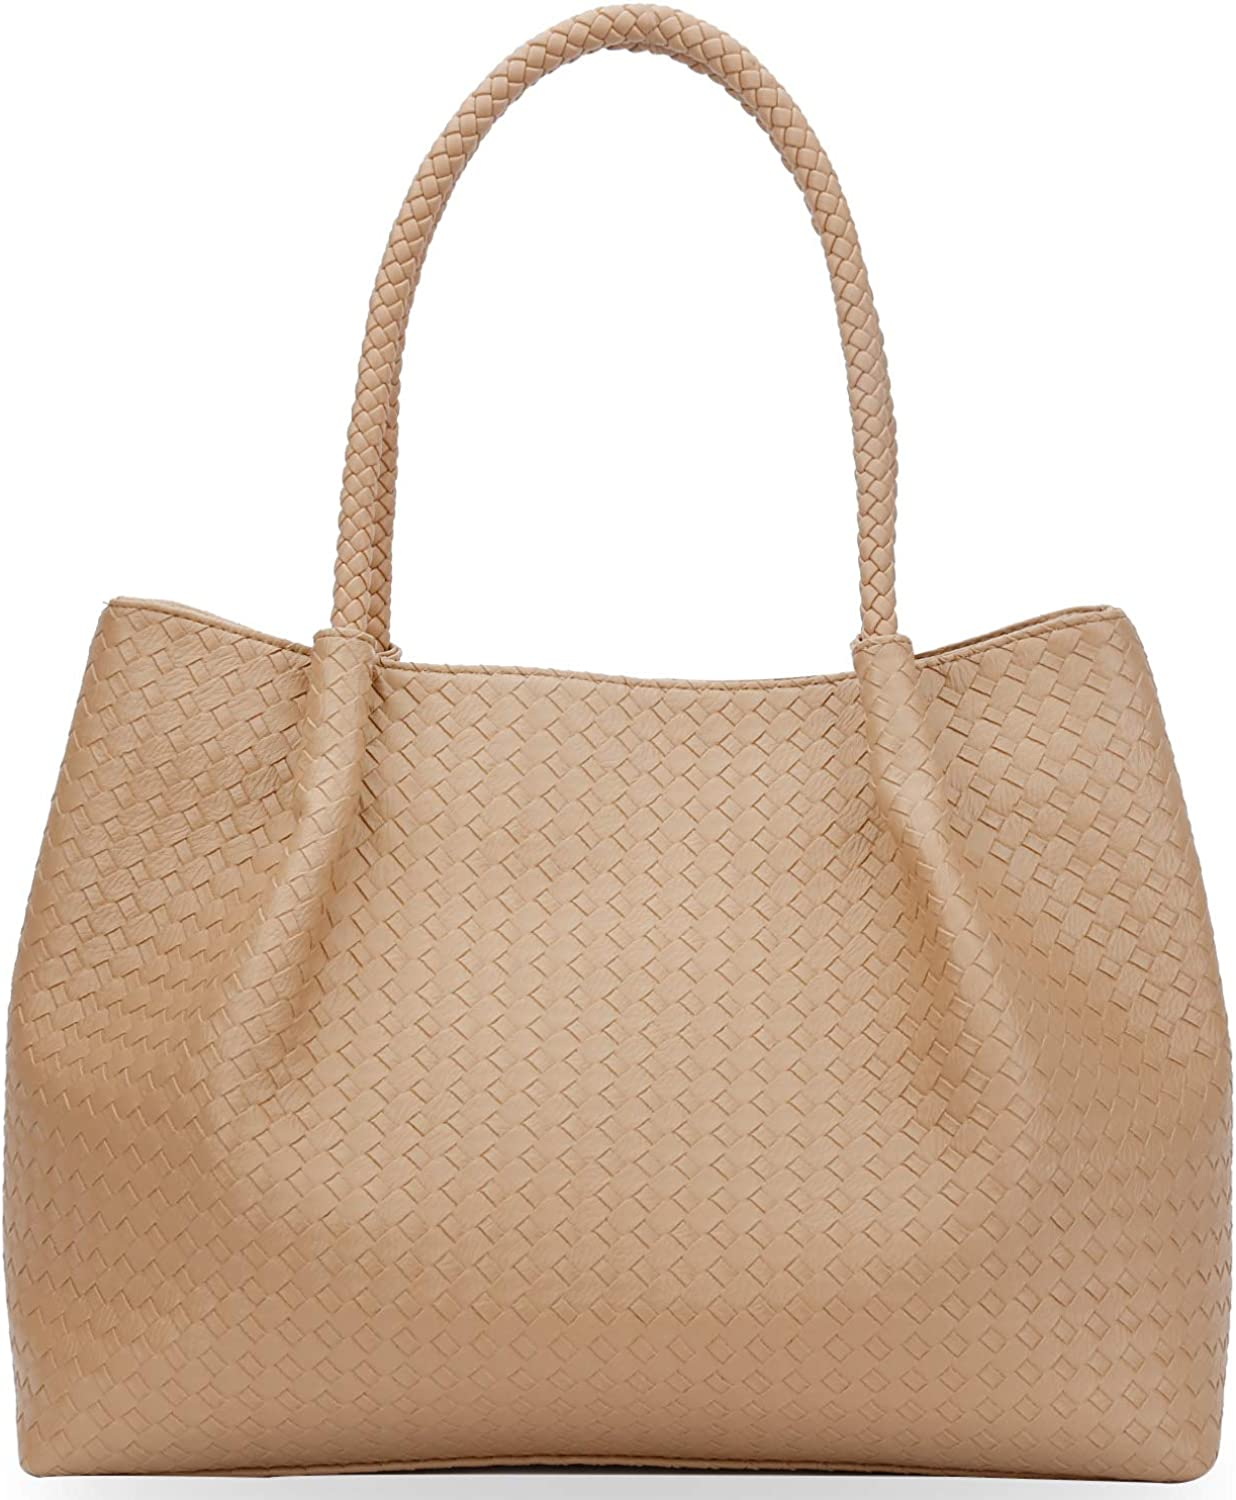 KKXIU Tote Bag For Women Synthetic Leather Embossing Shoulder Purse Handbag |For Work School Travel Business Shopping